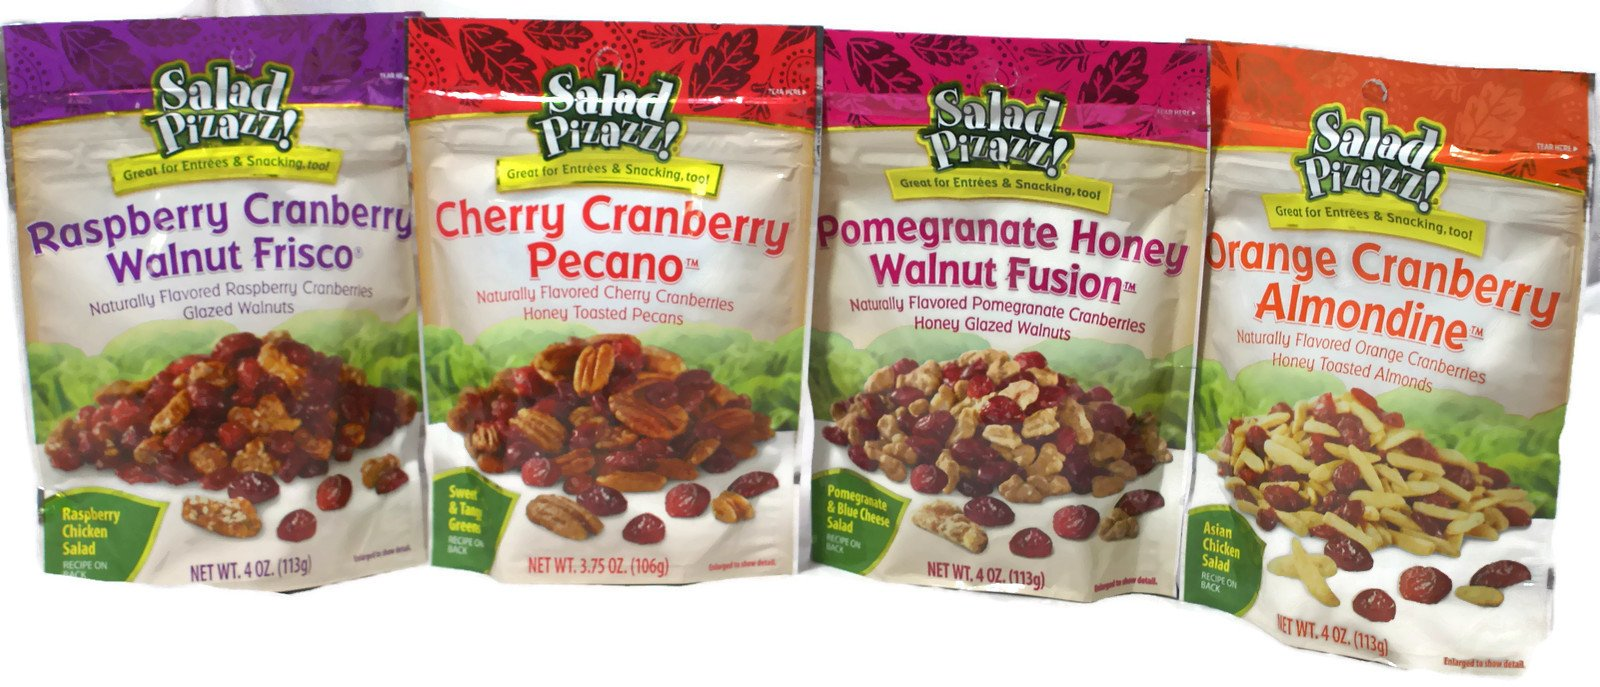 Variety Pack - Salad Pizazz Snacking Nuts - Cherry Cranberry Pecano (3.75 oz), Orange Cranberry Almondine (4 oz), Raspberry Cranberry Walnut Frisco (4 oz), Pomegranate Honey Walnut Fusion (4 oz)